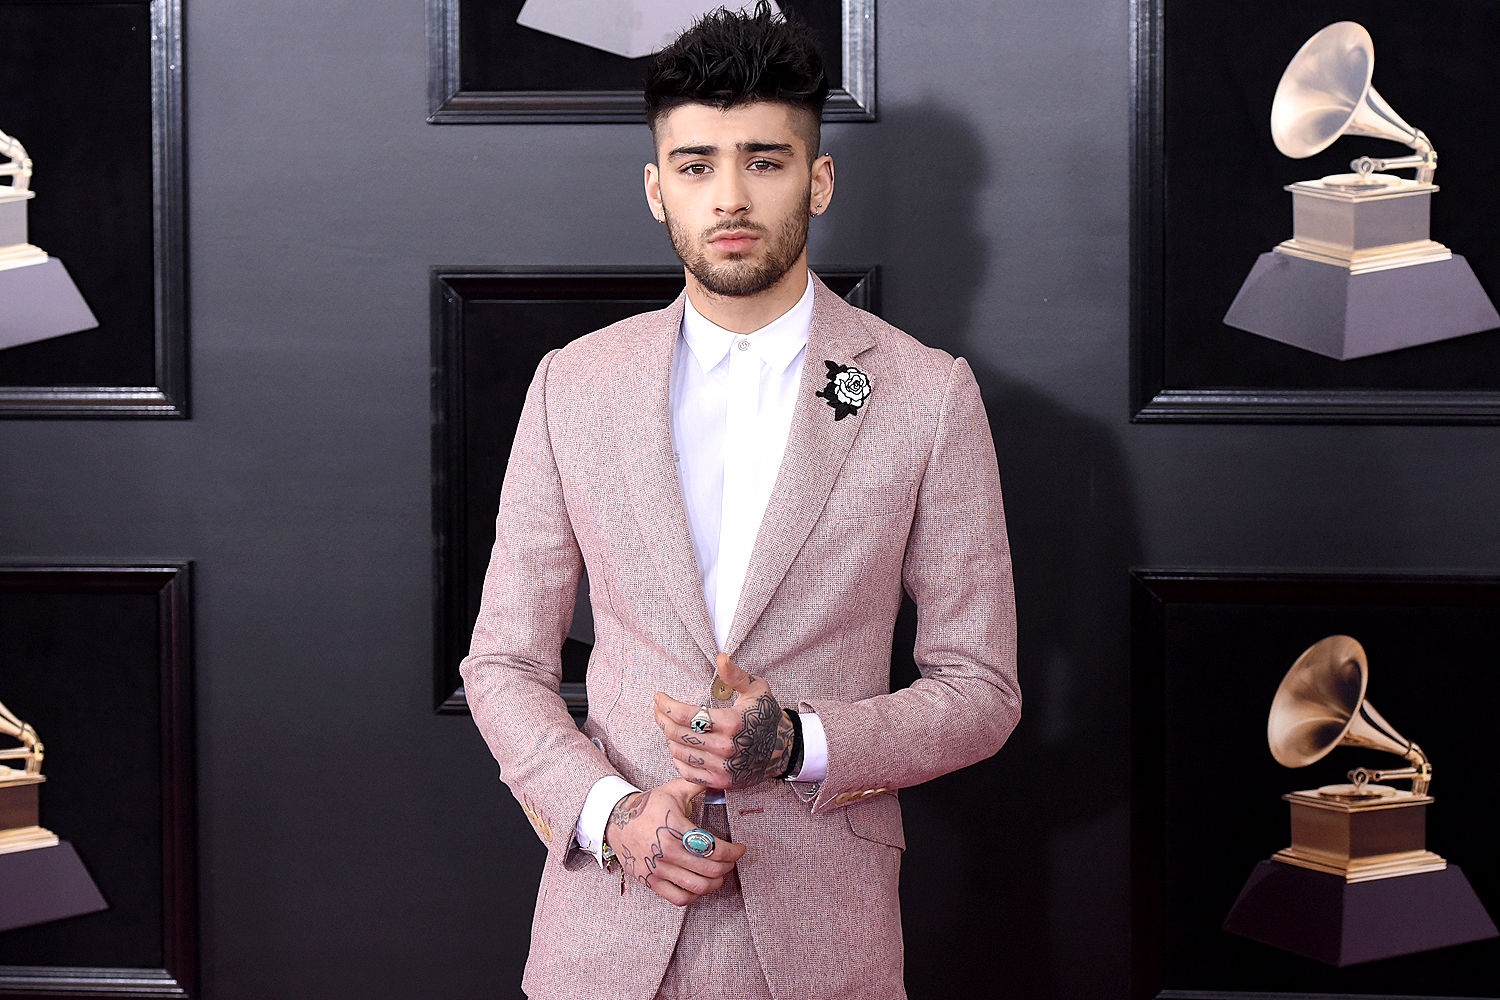 Zayn Malik Claims Grammys Are Rigged 'Unless You Shake Hands' Despite His Ineligibility This Year